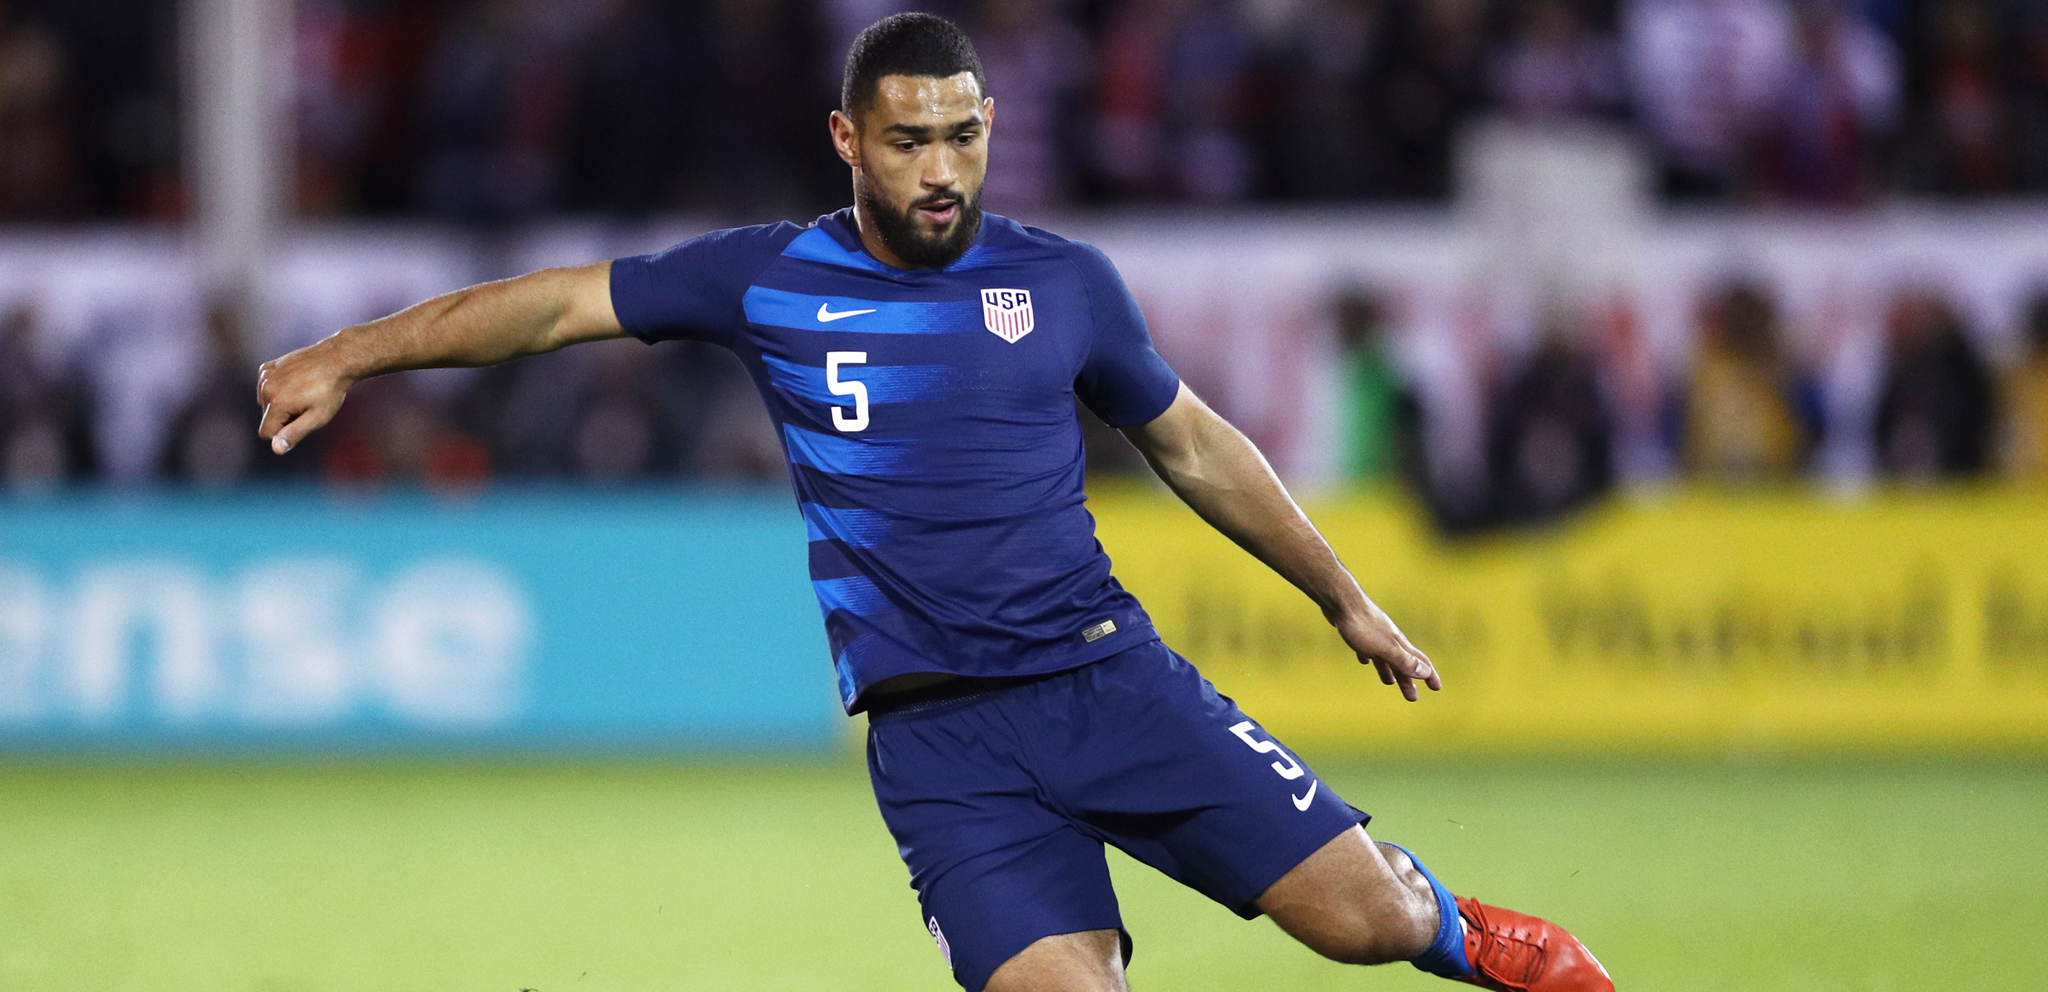 Cameron Carter Vickers Profile Stats And News Tottenham Hotspur